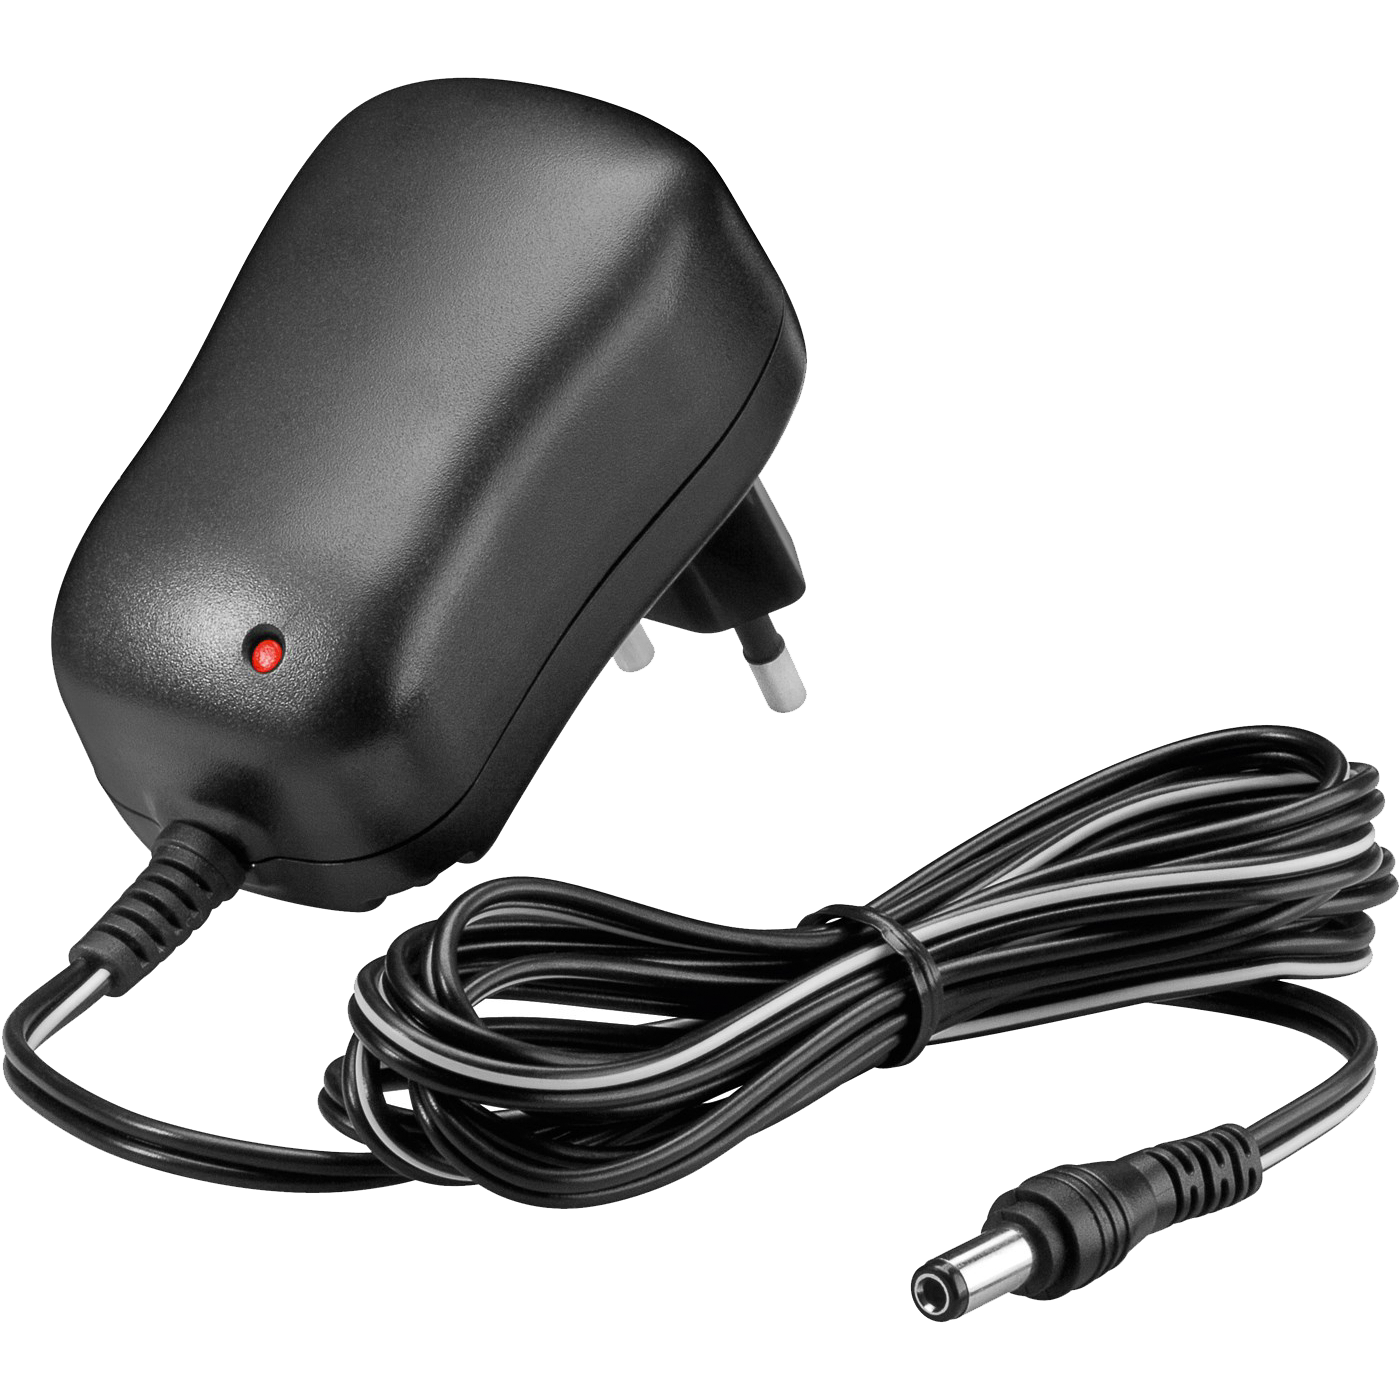 Eule - Adapter 12V/1A